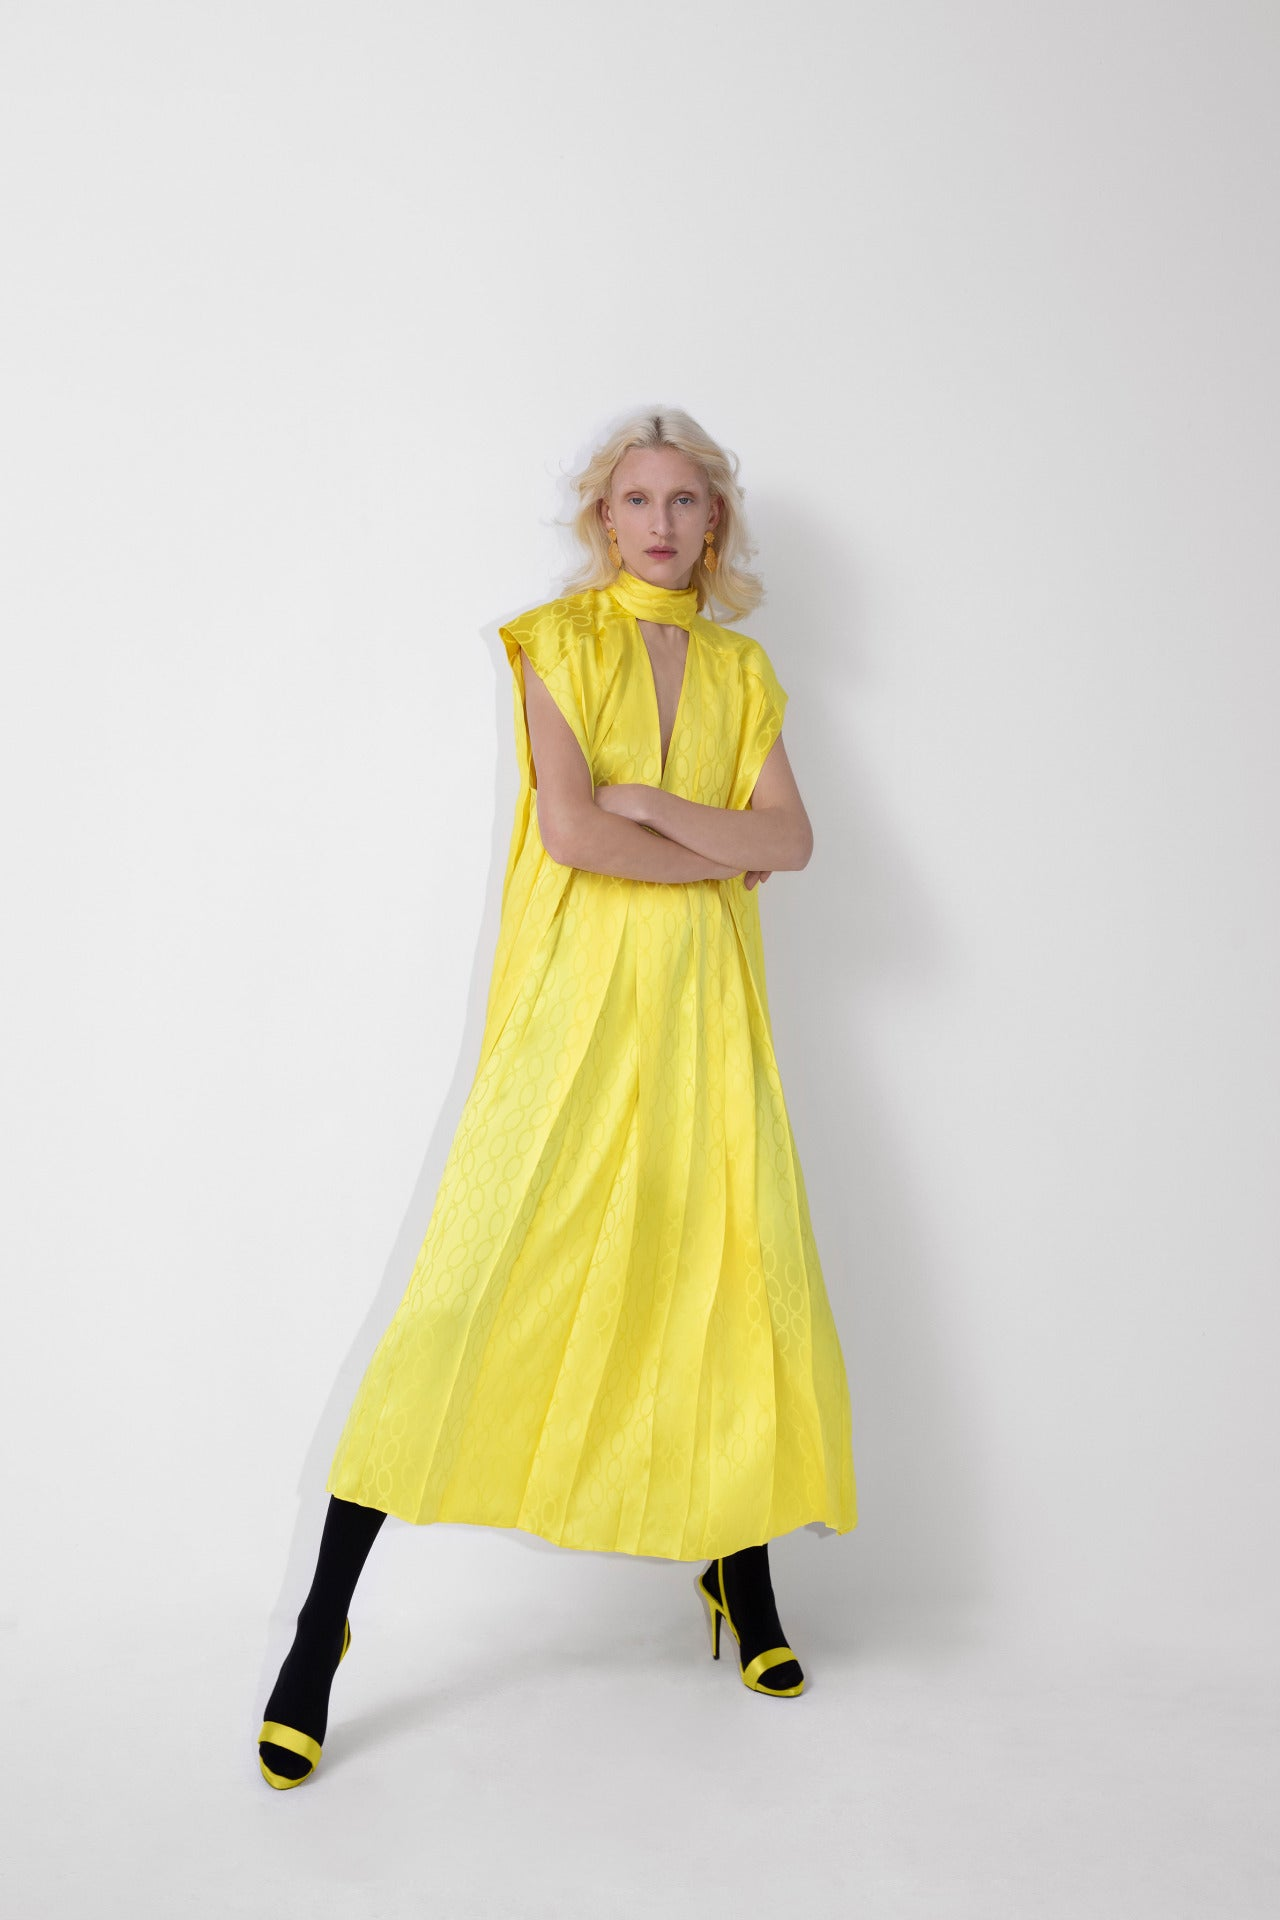 ESCADA Fall/Winter 2020 Yellow dress